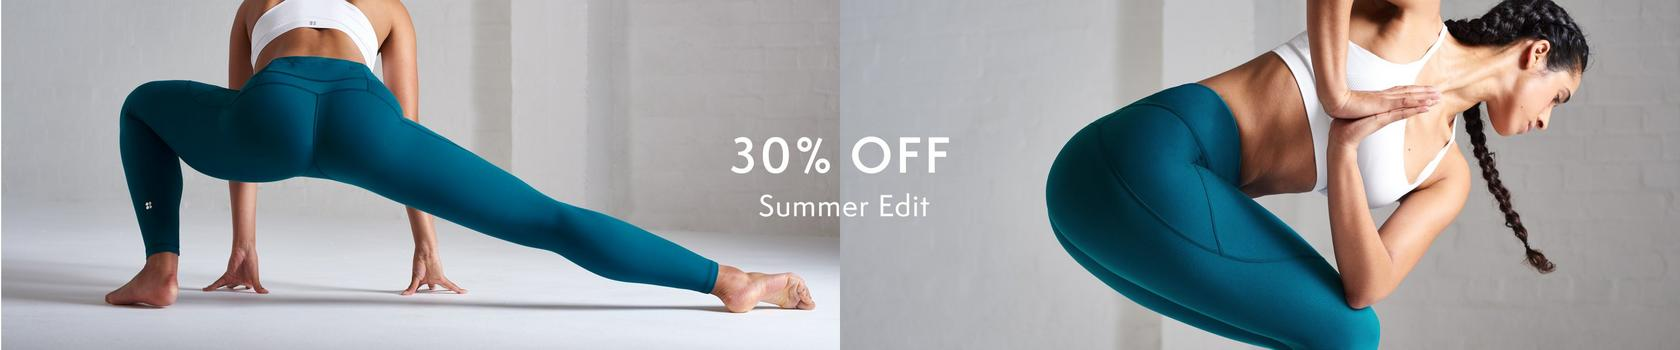 30% off summer edit